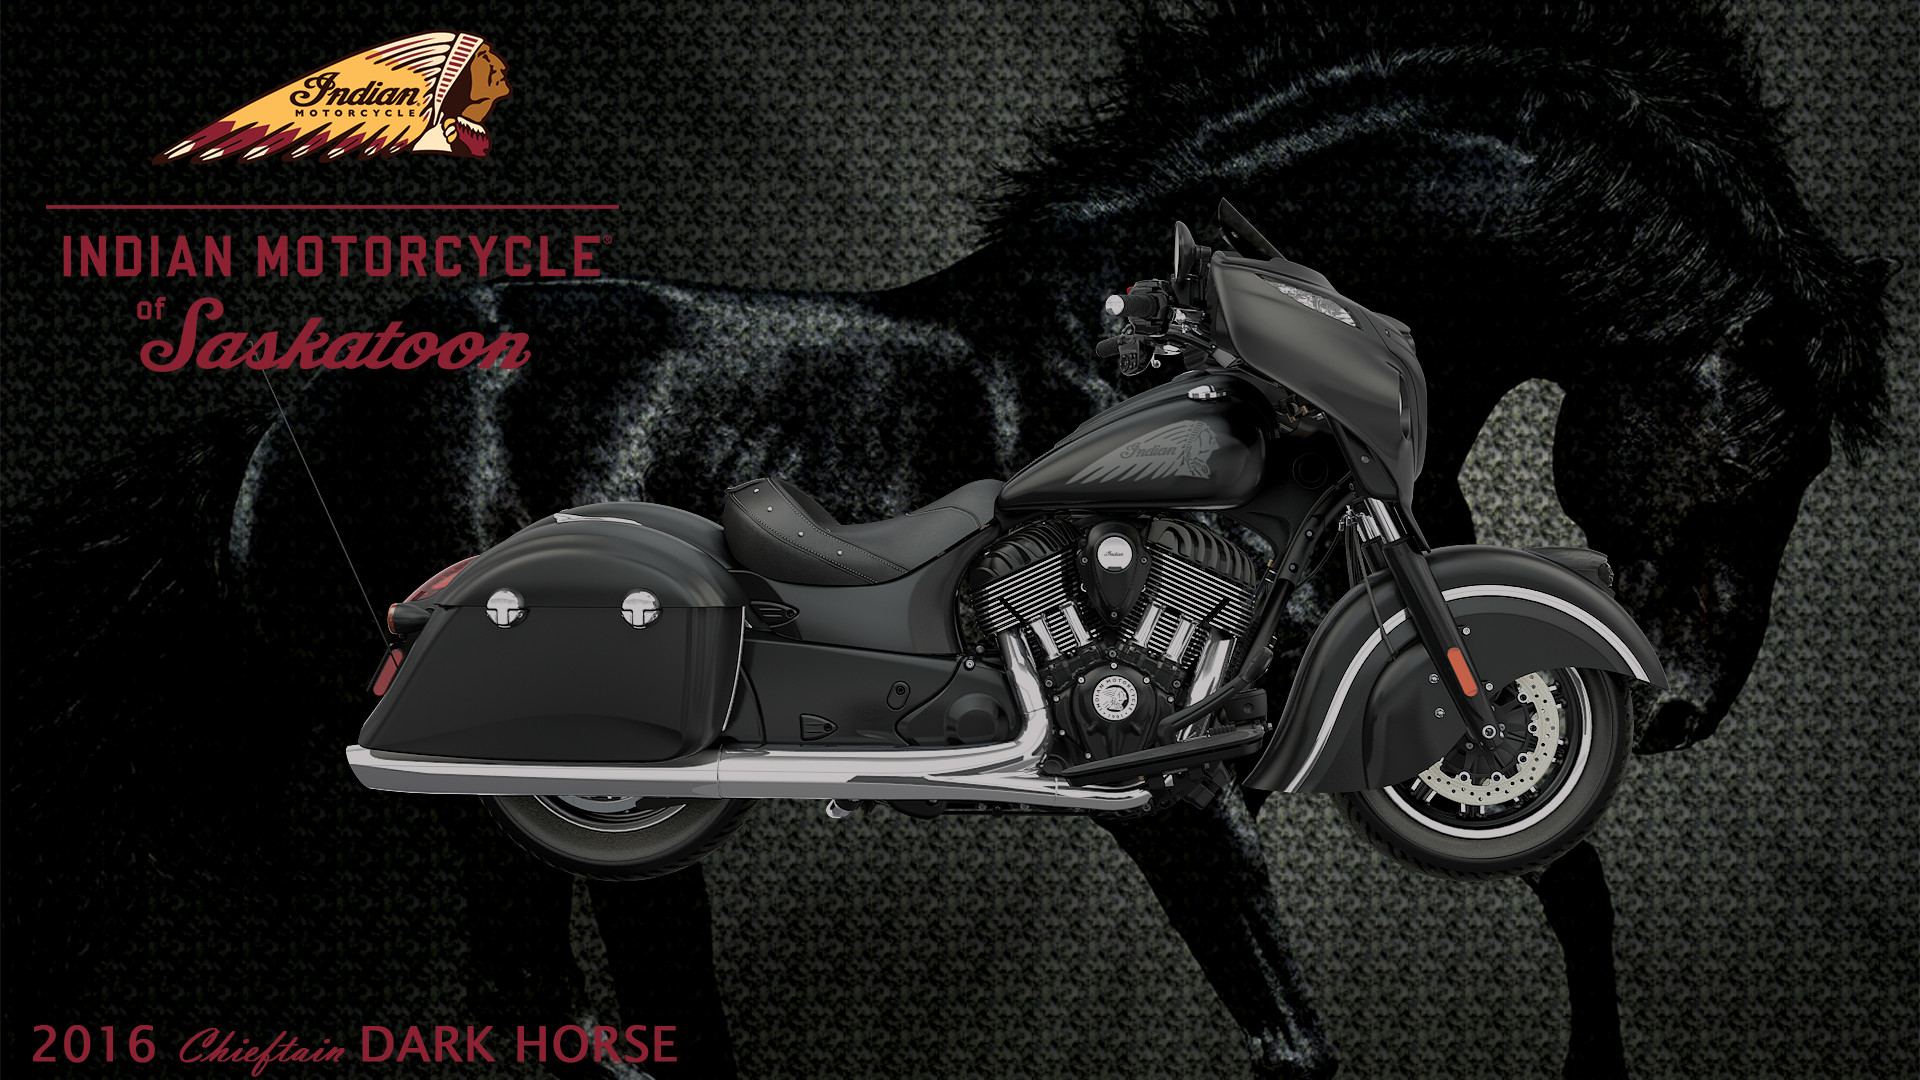 Res: 1920x1080, Wallpapers. Indian Motorcycle Saskatoon Chieftain Dark Horse